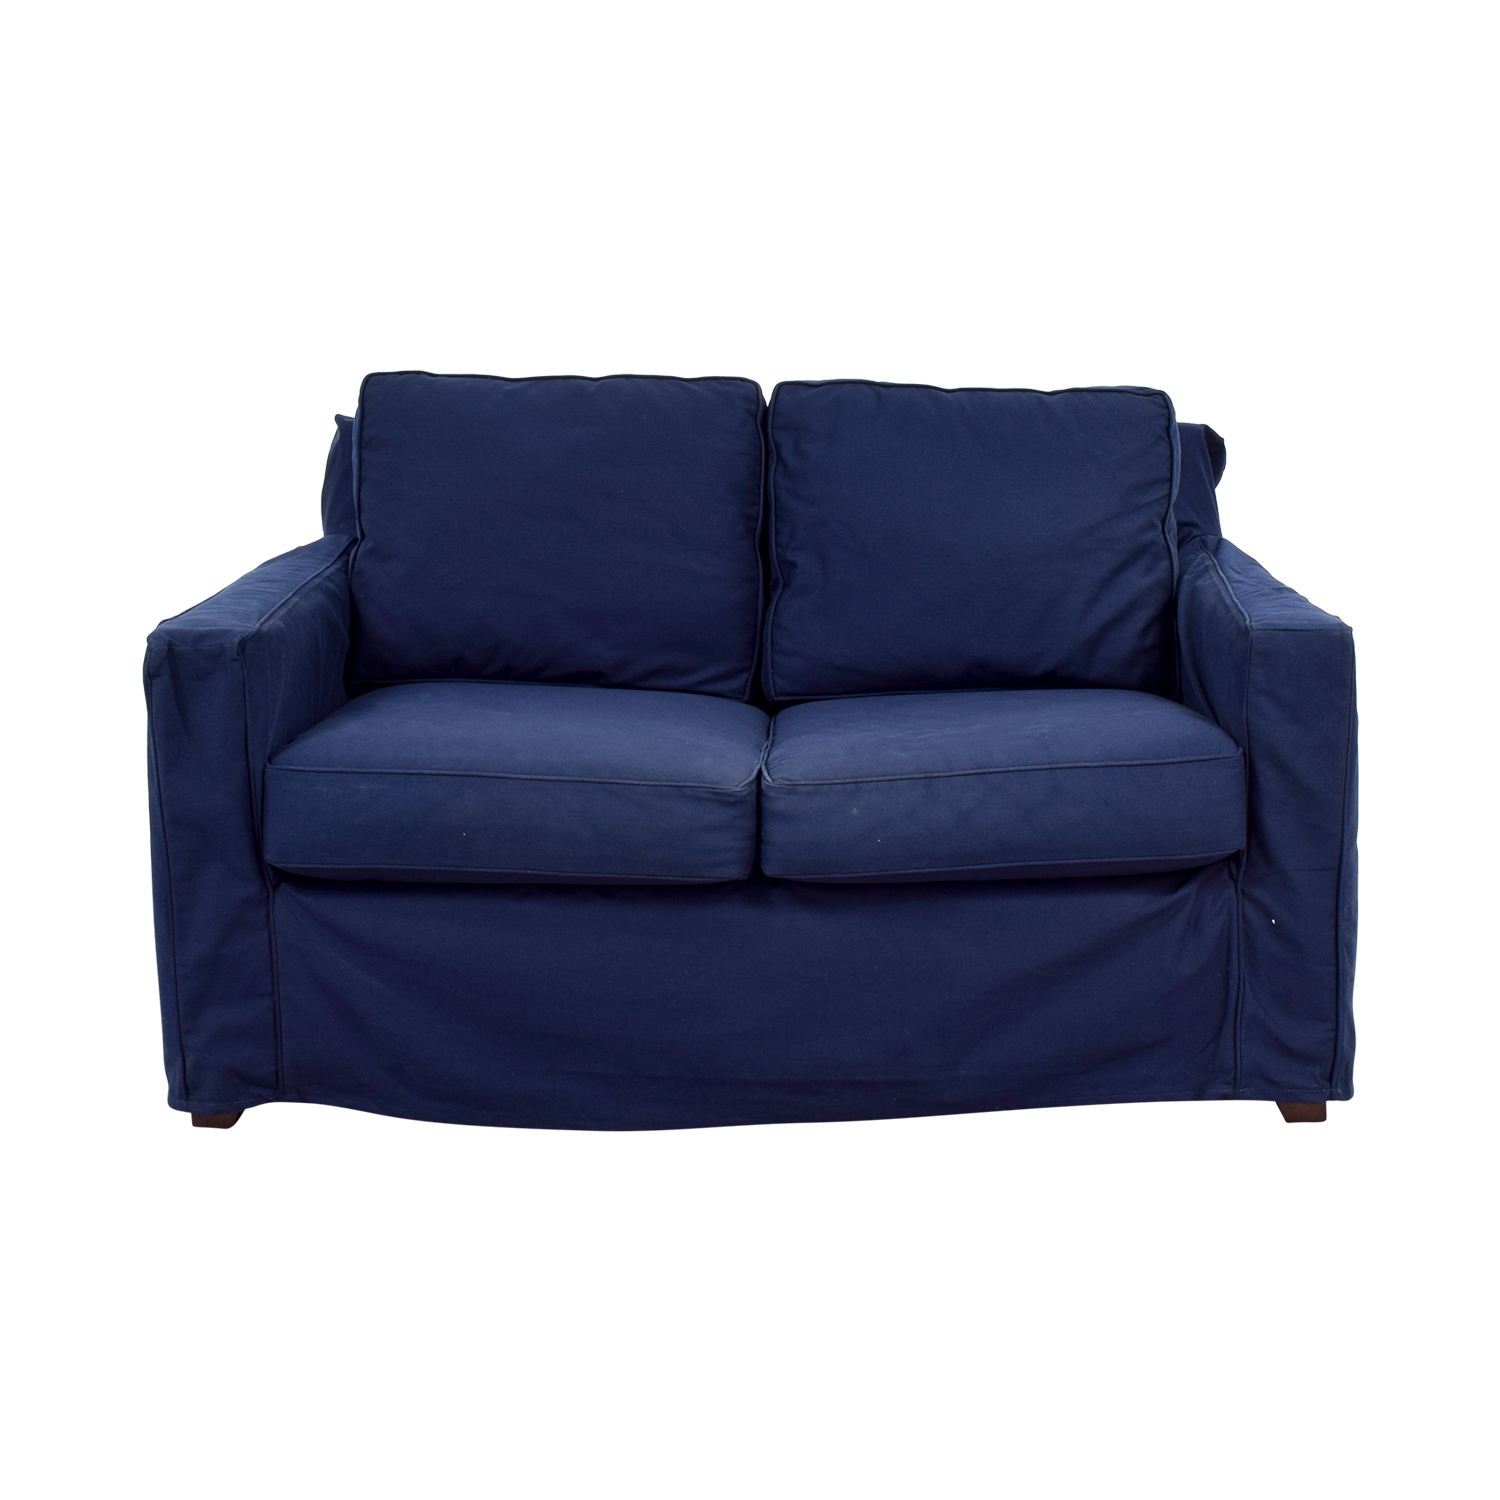 Pottery Barn Cameron Navy Twill Slipcovered Loveseat sale